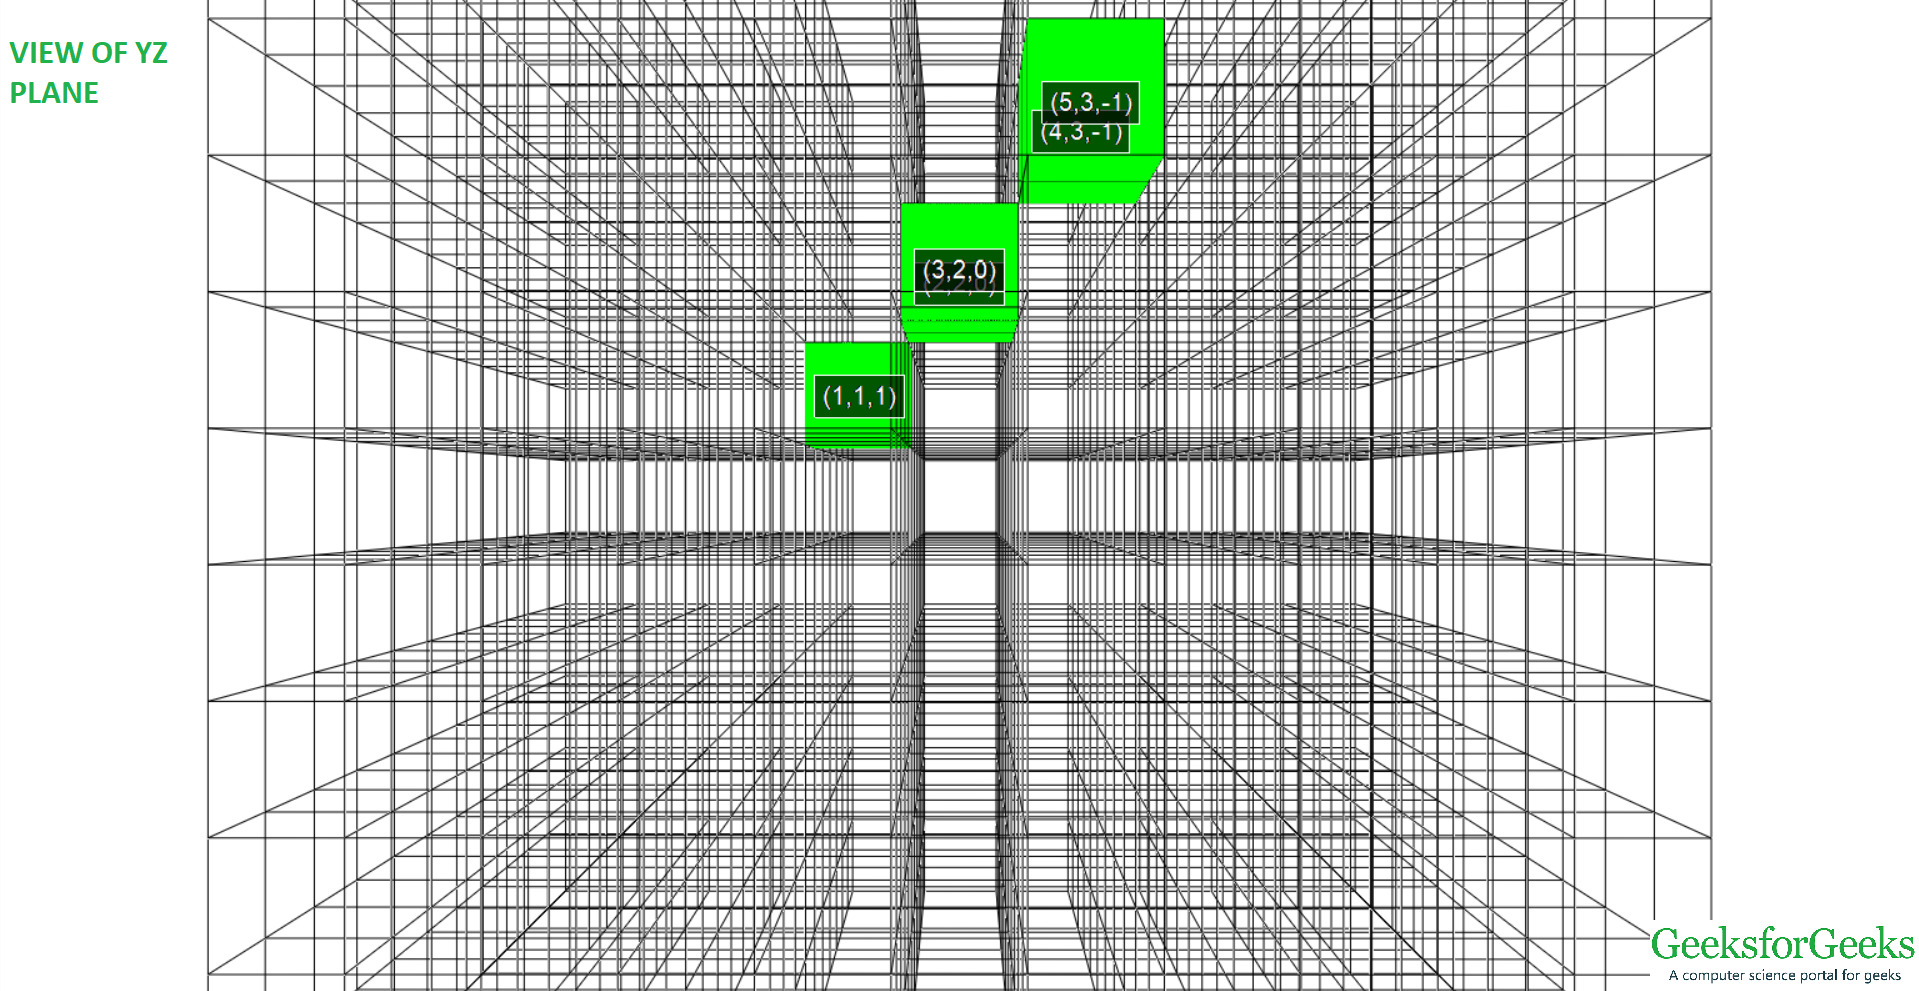 View of 3D line from (-1, 1, 1) to (5, 3, -1) of YZ plane